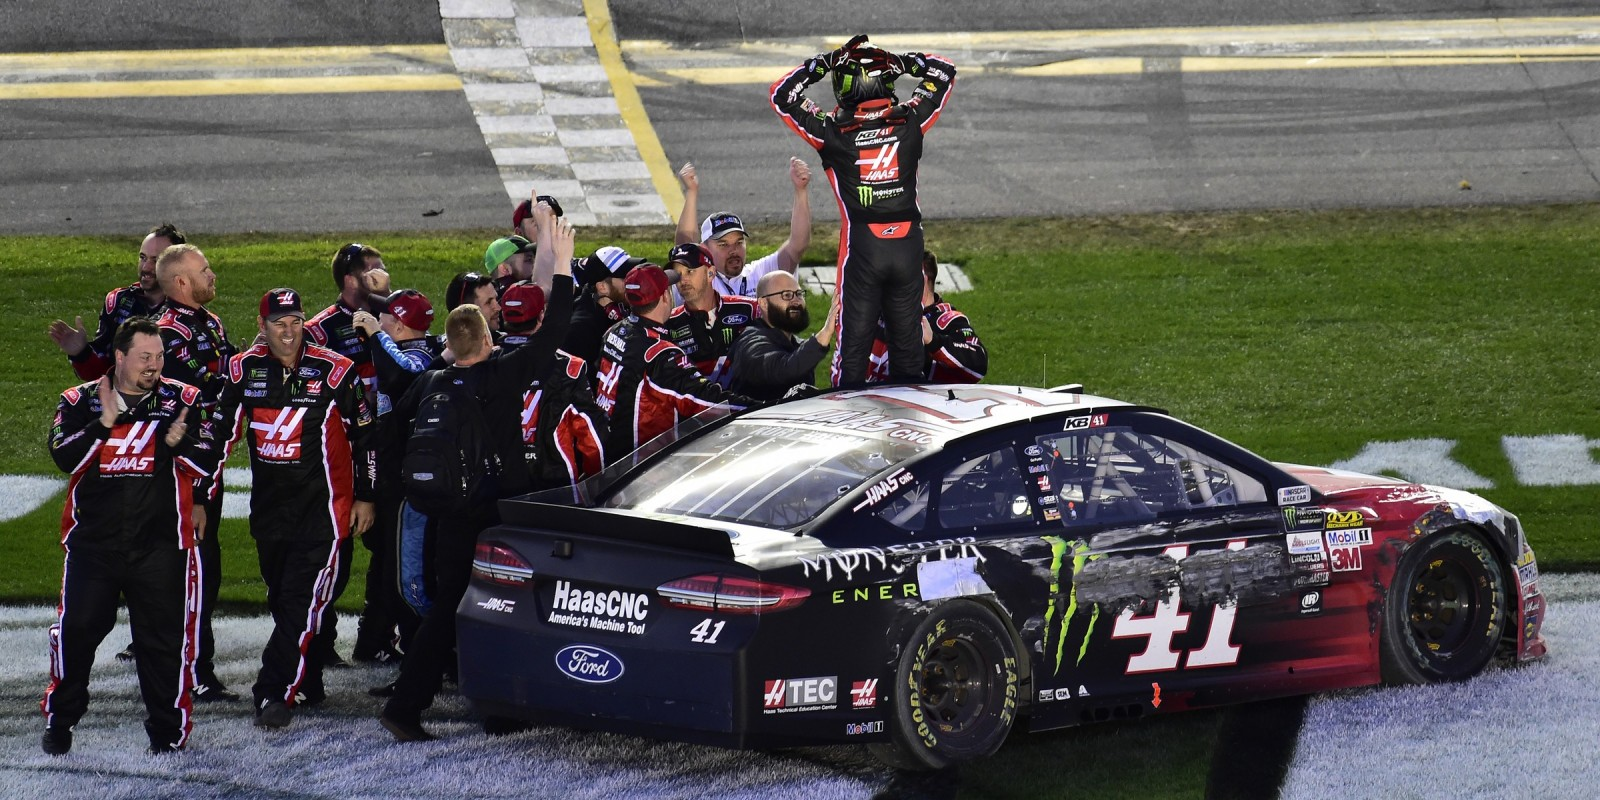 Kurt Busch kicks off the Monster Energy Nascar Cup Series with the checkered flag at the Daytona 500